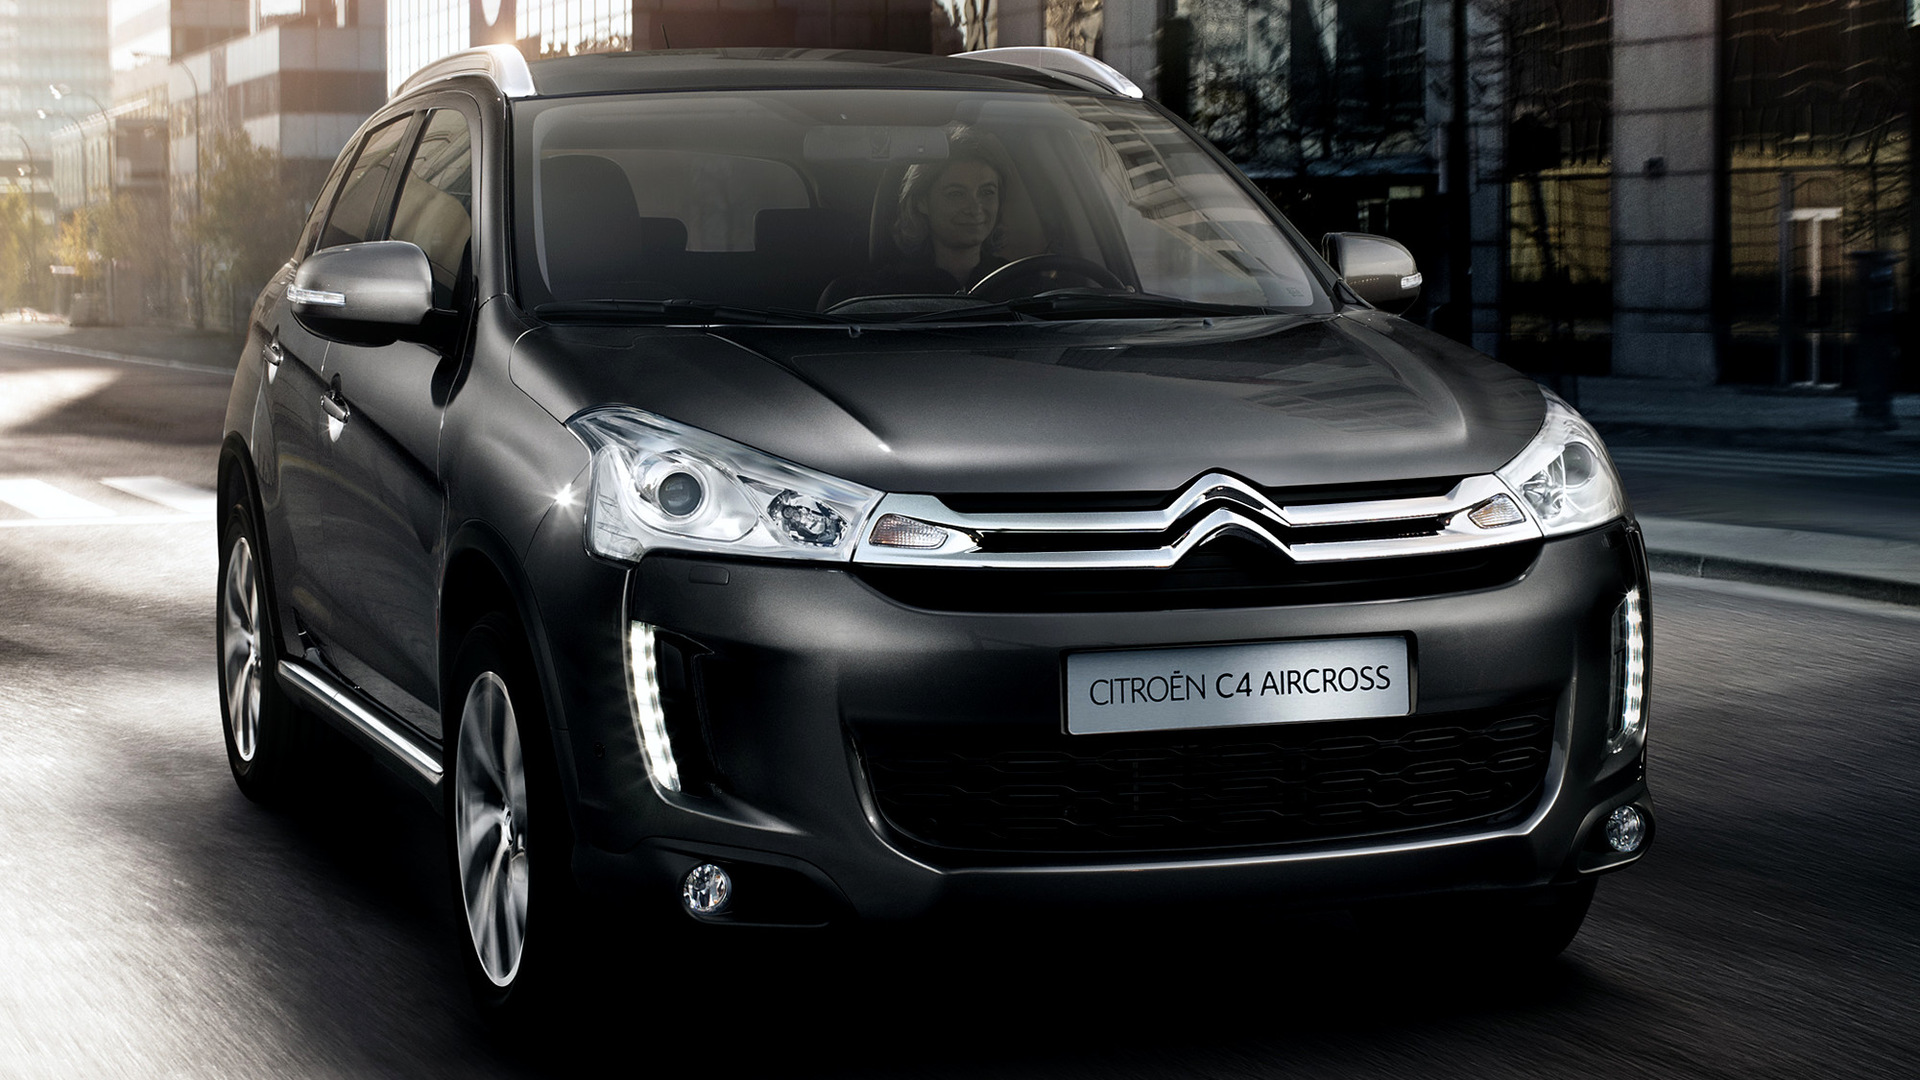 citroen c4 aircross 2012 wallpapers and hd images car pixel. Black Bedroom Furniture Sets. Home Design Ideas